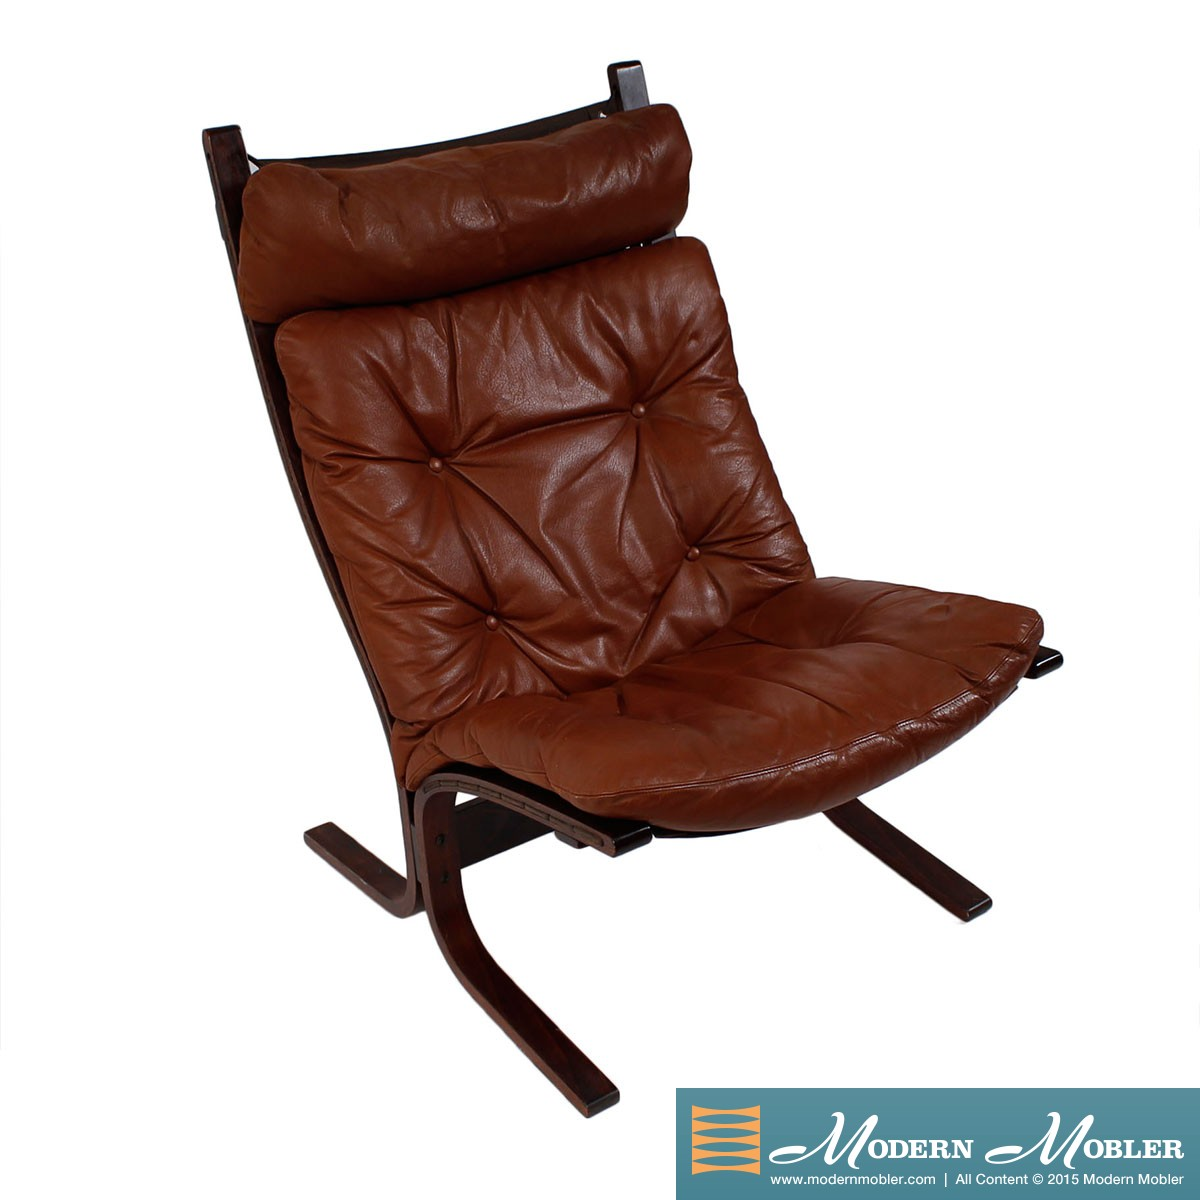 Westnofa's Siesta Lounge Chair